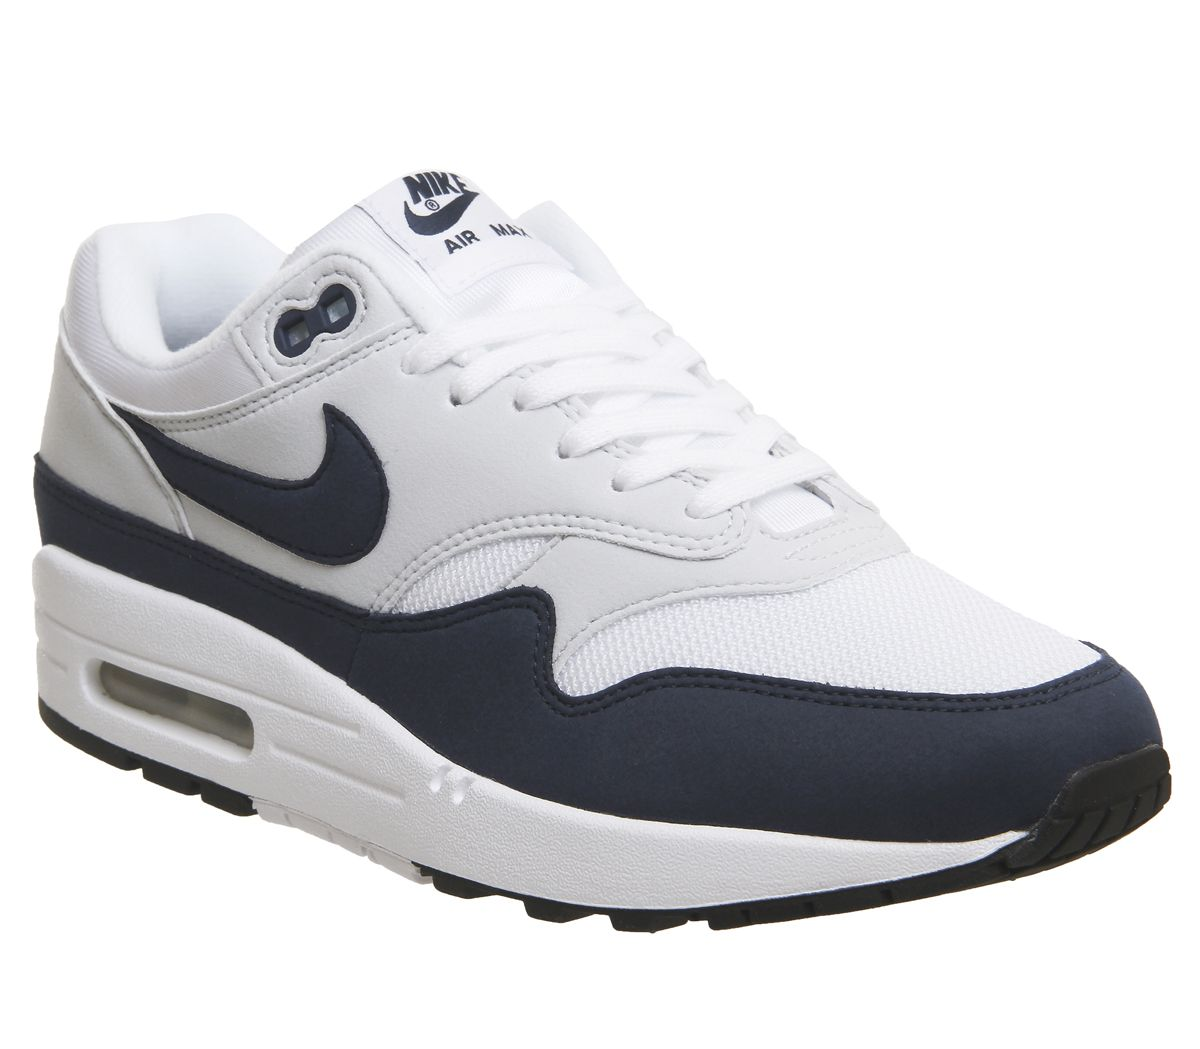 check out 3a9d4 34625 Nike Air Max 1 Trainers White Obsidian Pure Platform Black - Hers ...